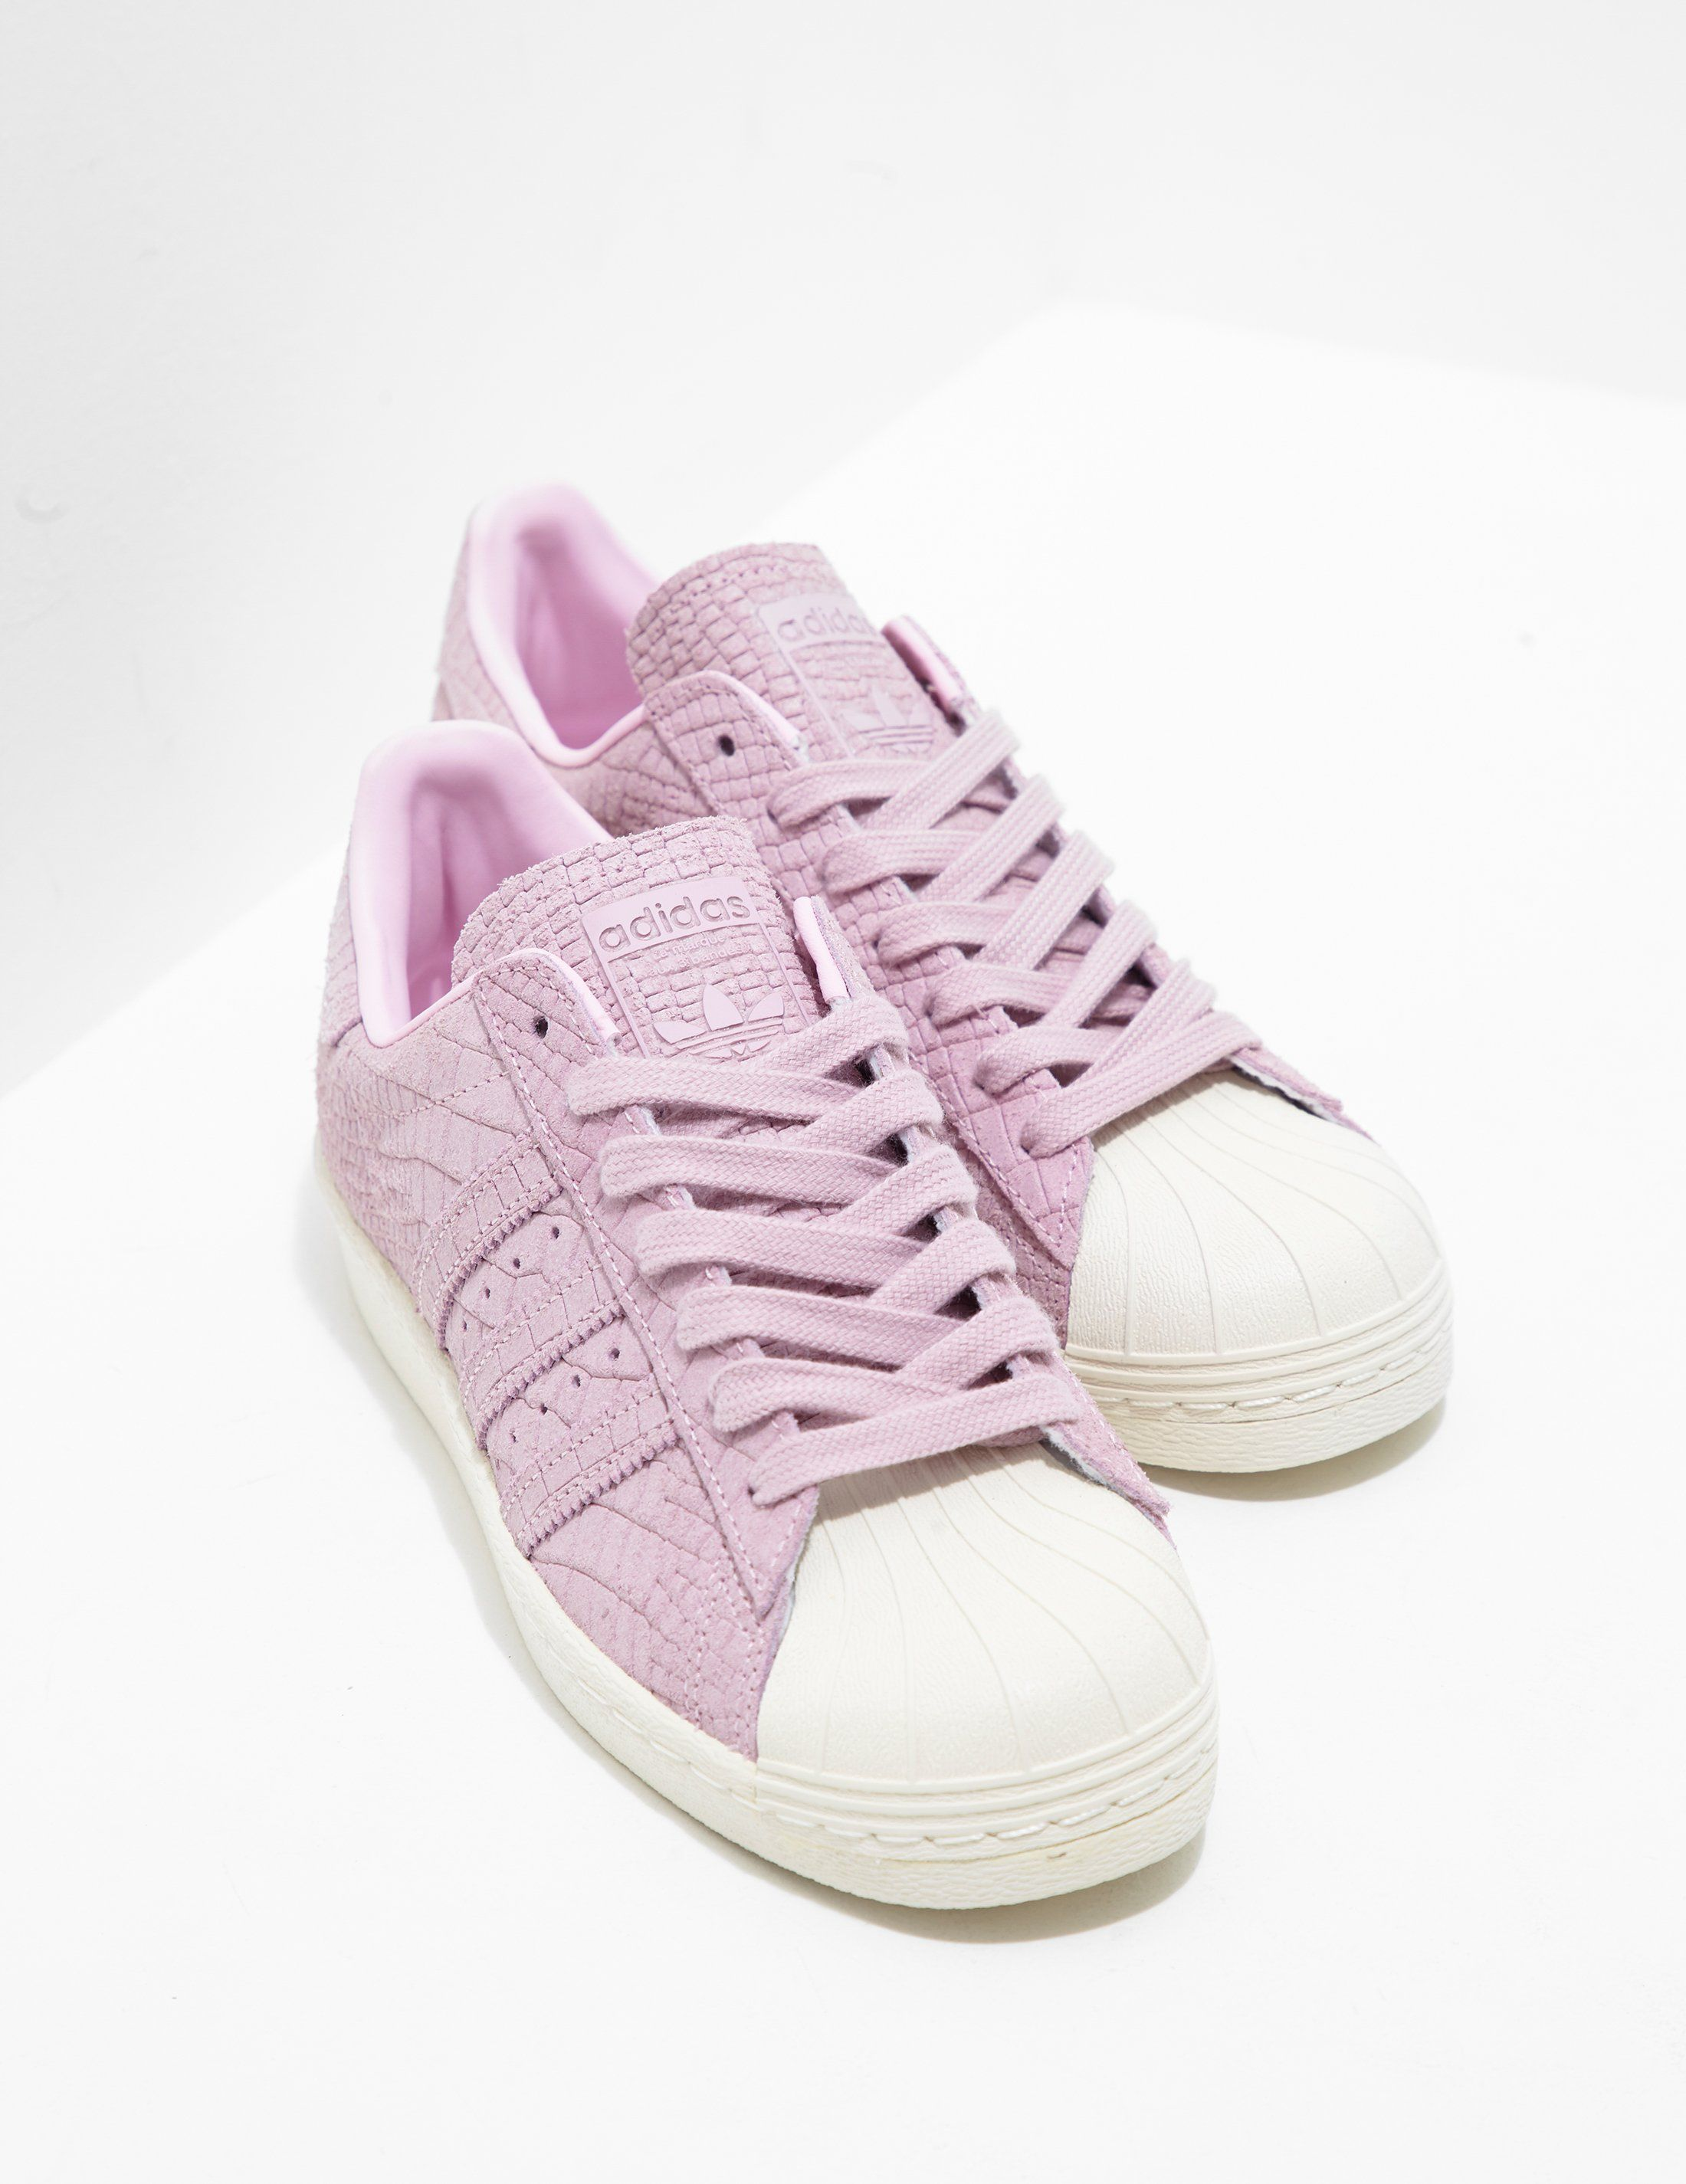 adidas Originals Superstar Croc